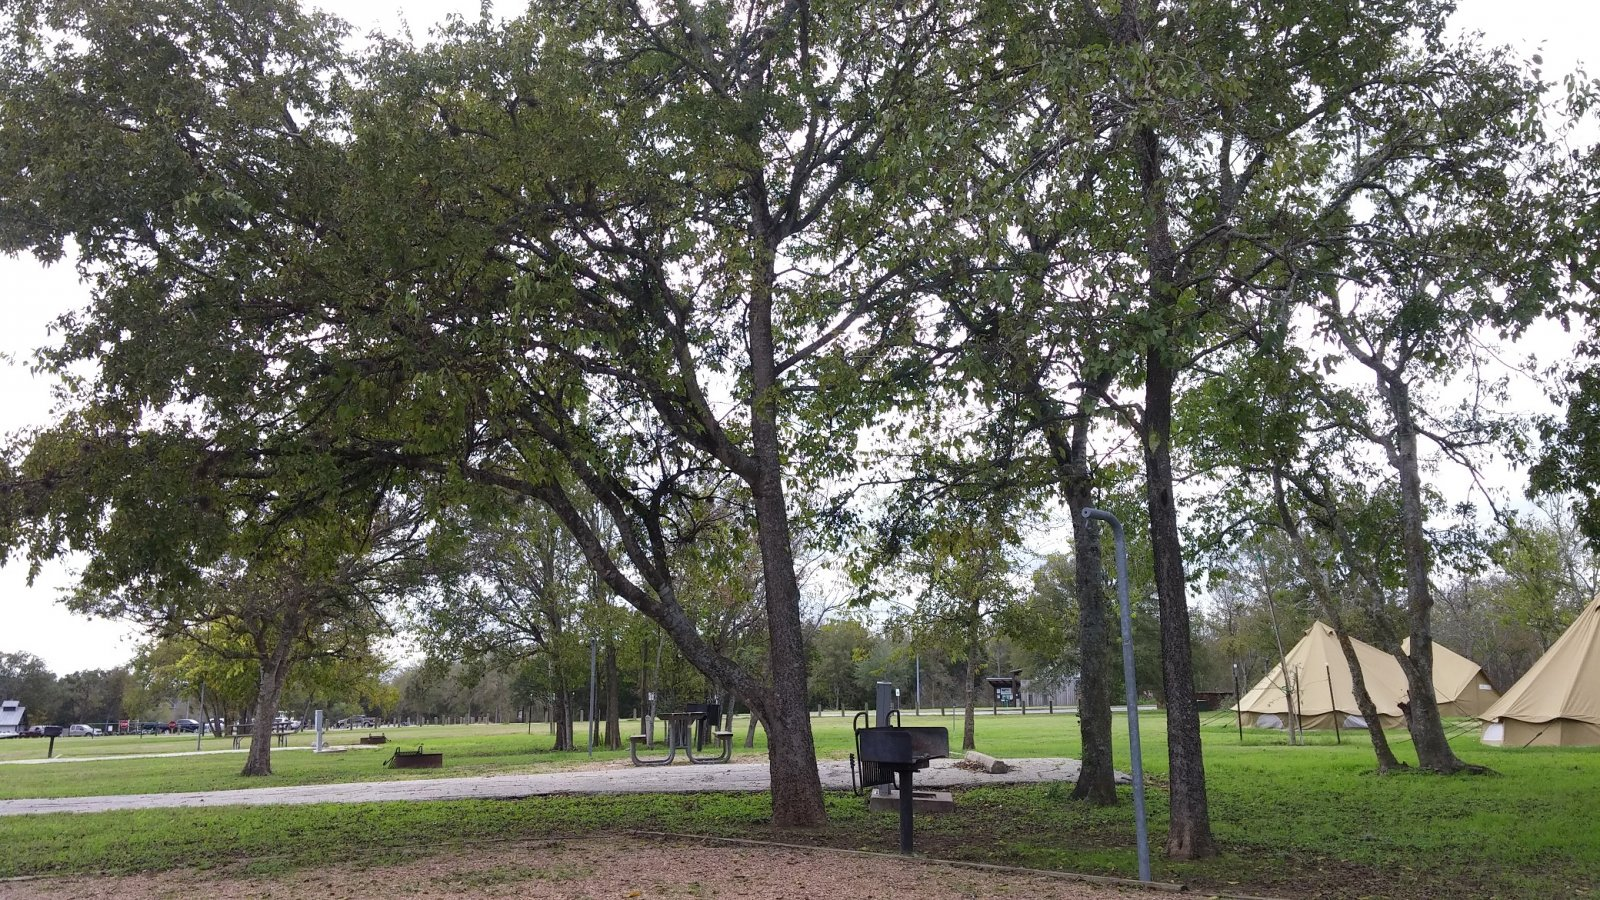 Click image for larger version  Name:LCRA Park 1.jpg Views:110 Size:586.4 KB ID:252946